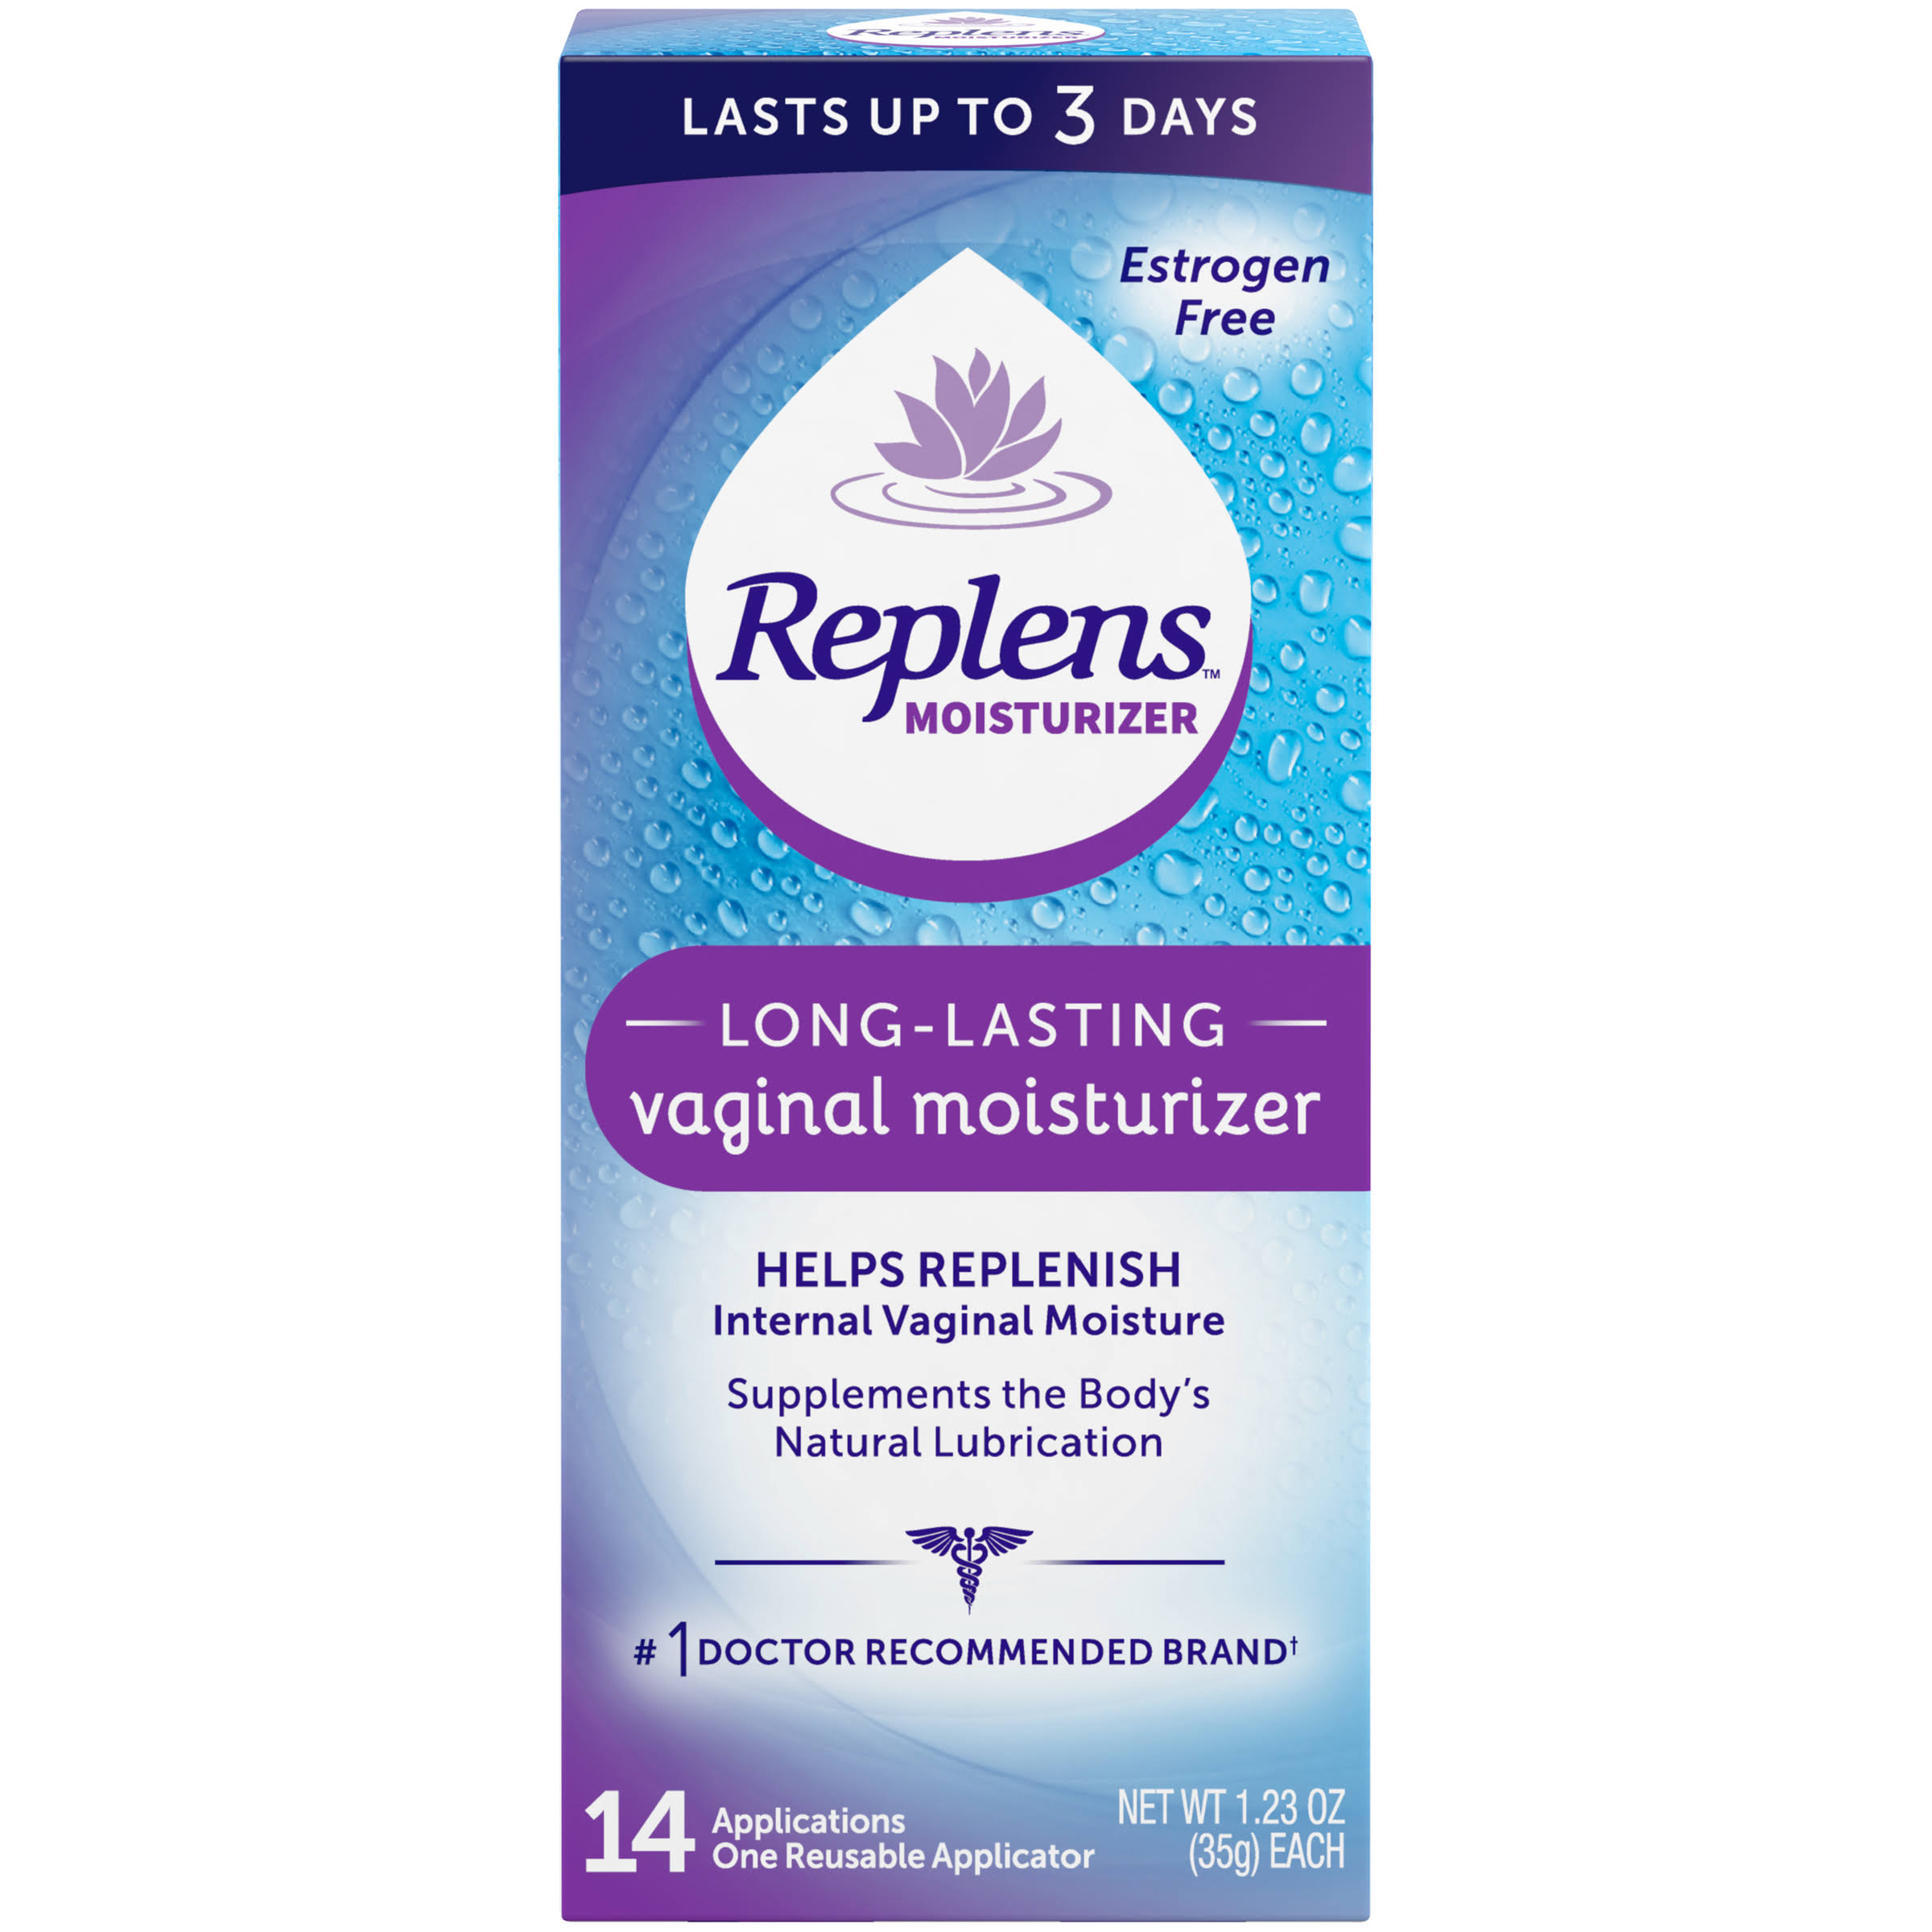 Replens Long Lasting Vaginal Moisturizer - 14 Applications, 35g